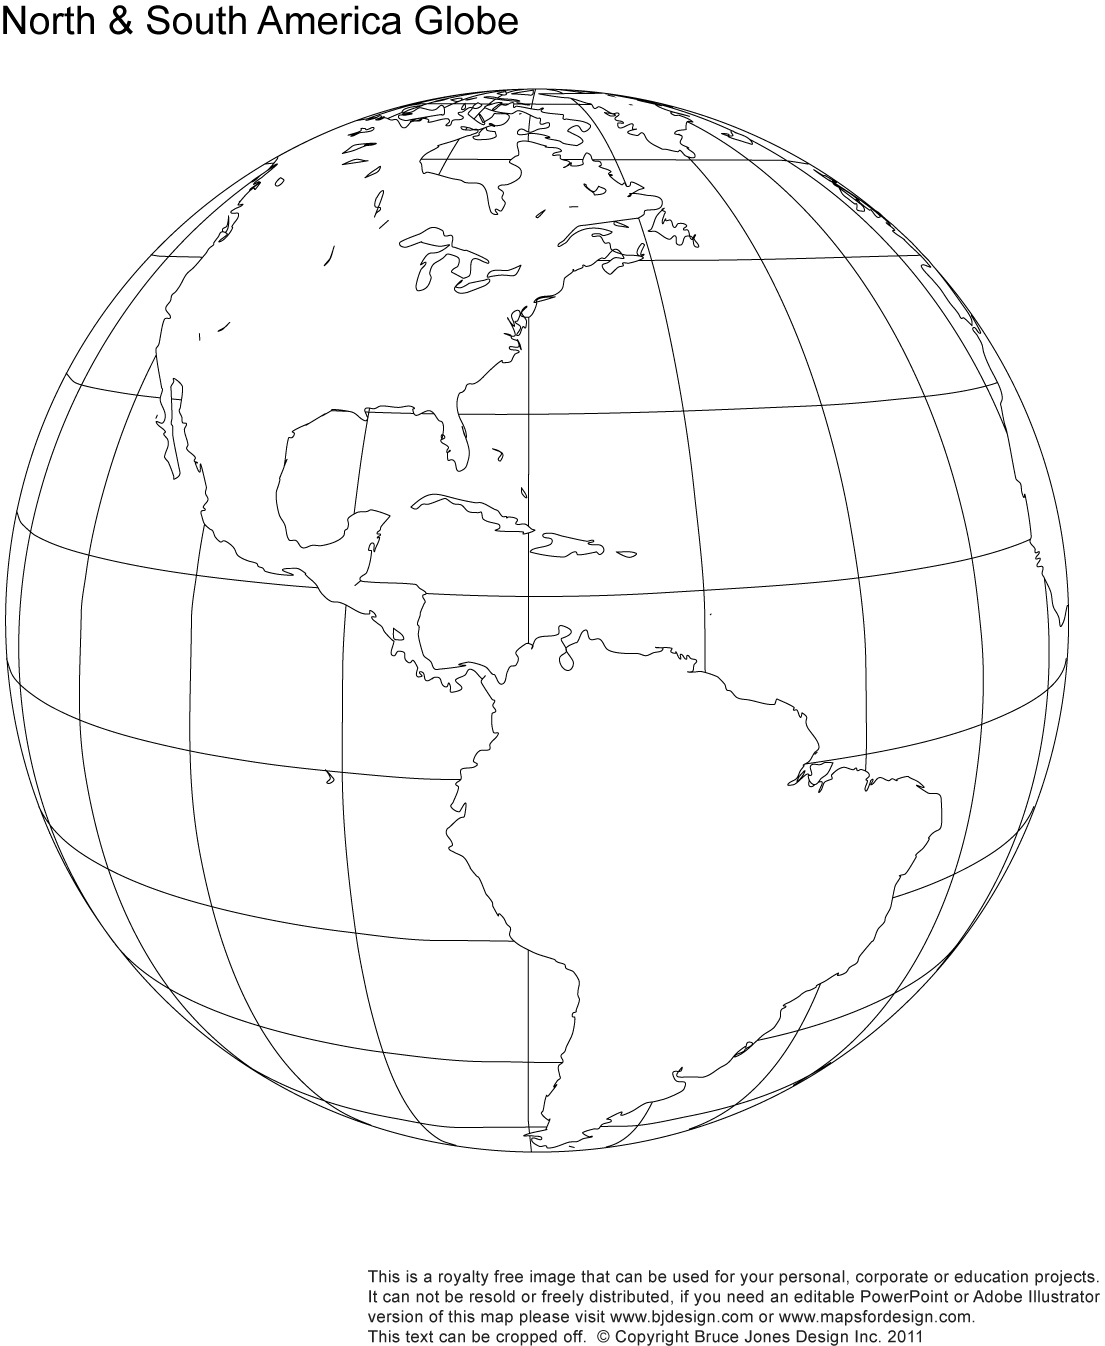 North And South America Globe Map, Printable Blank, Royalty Free, Jpg